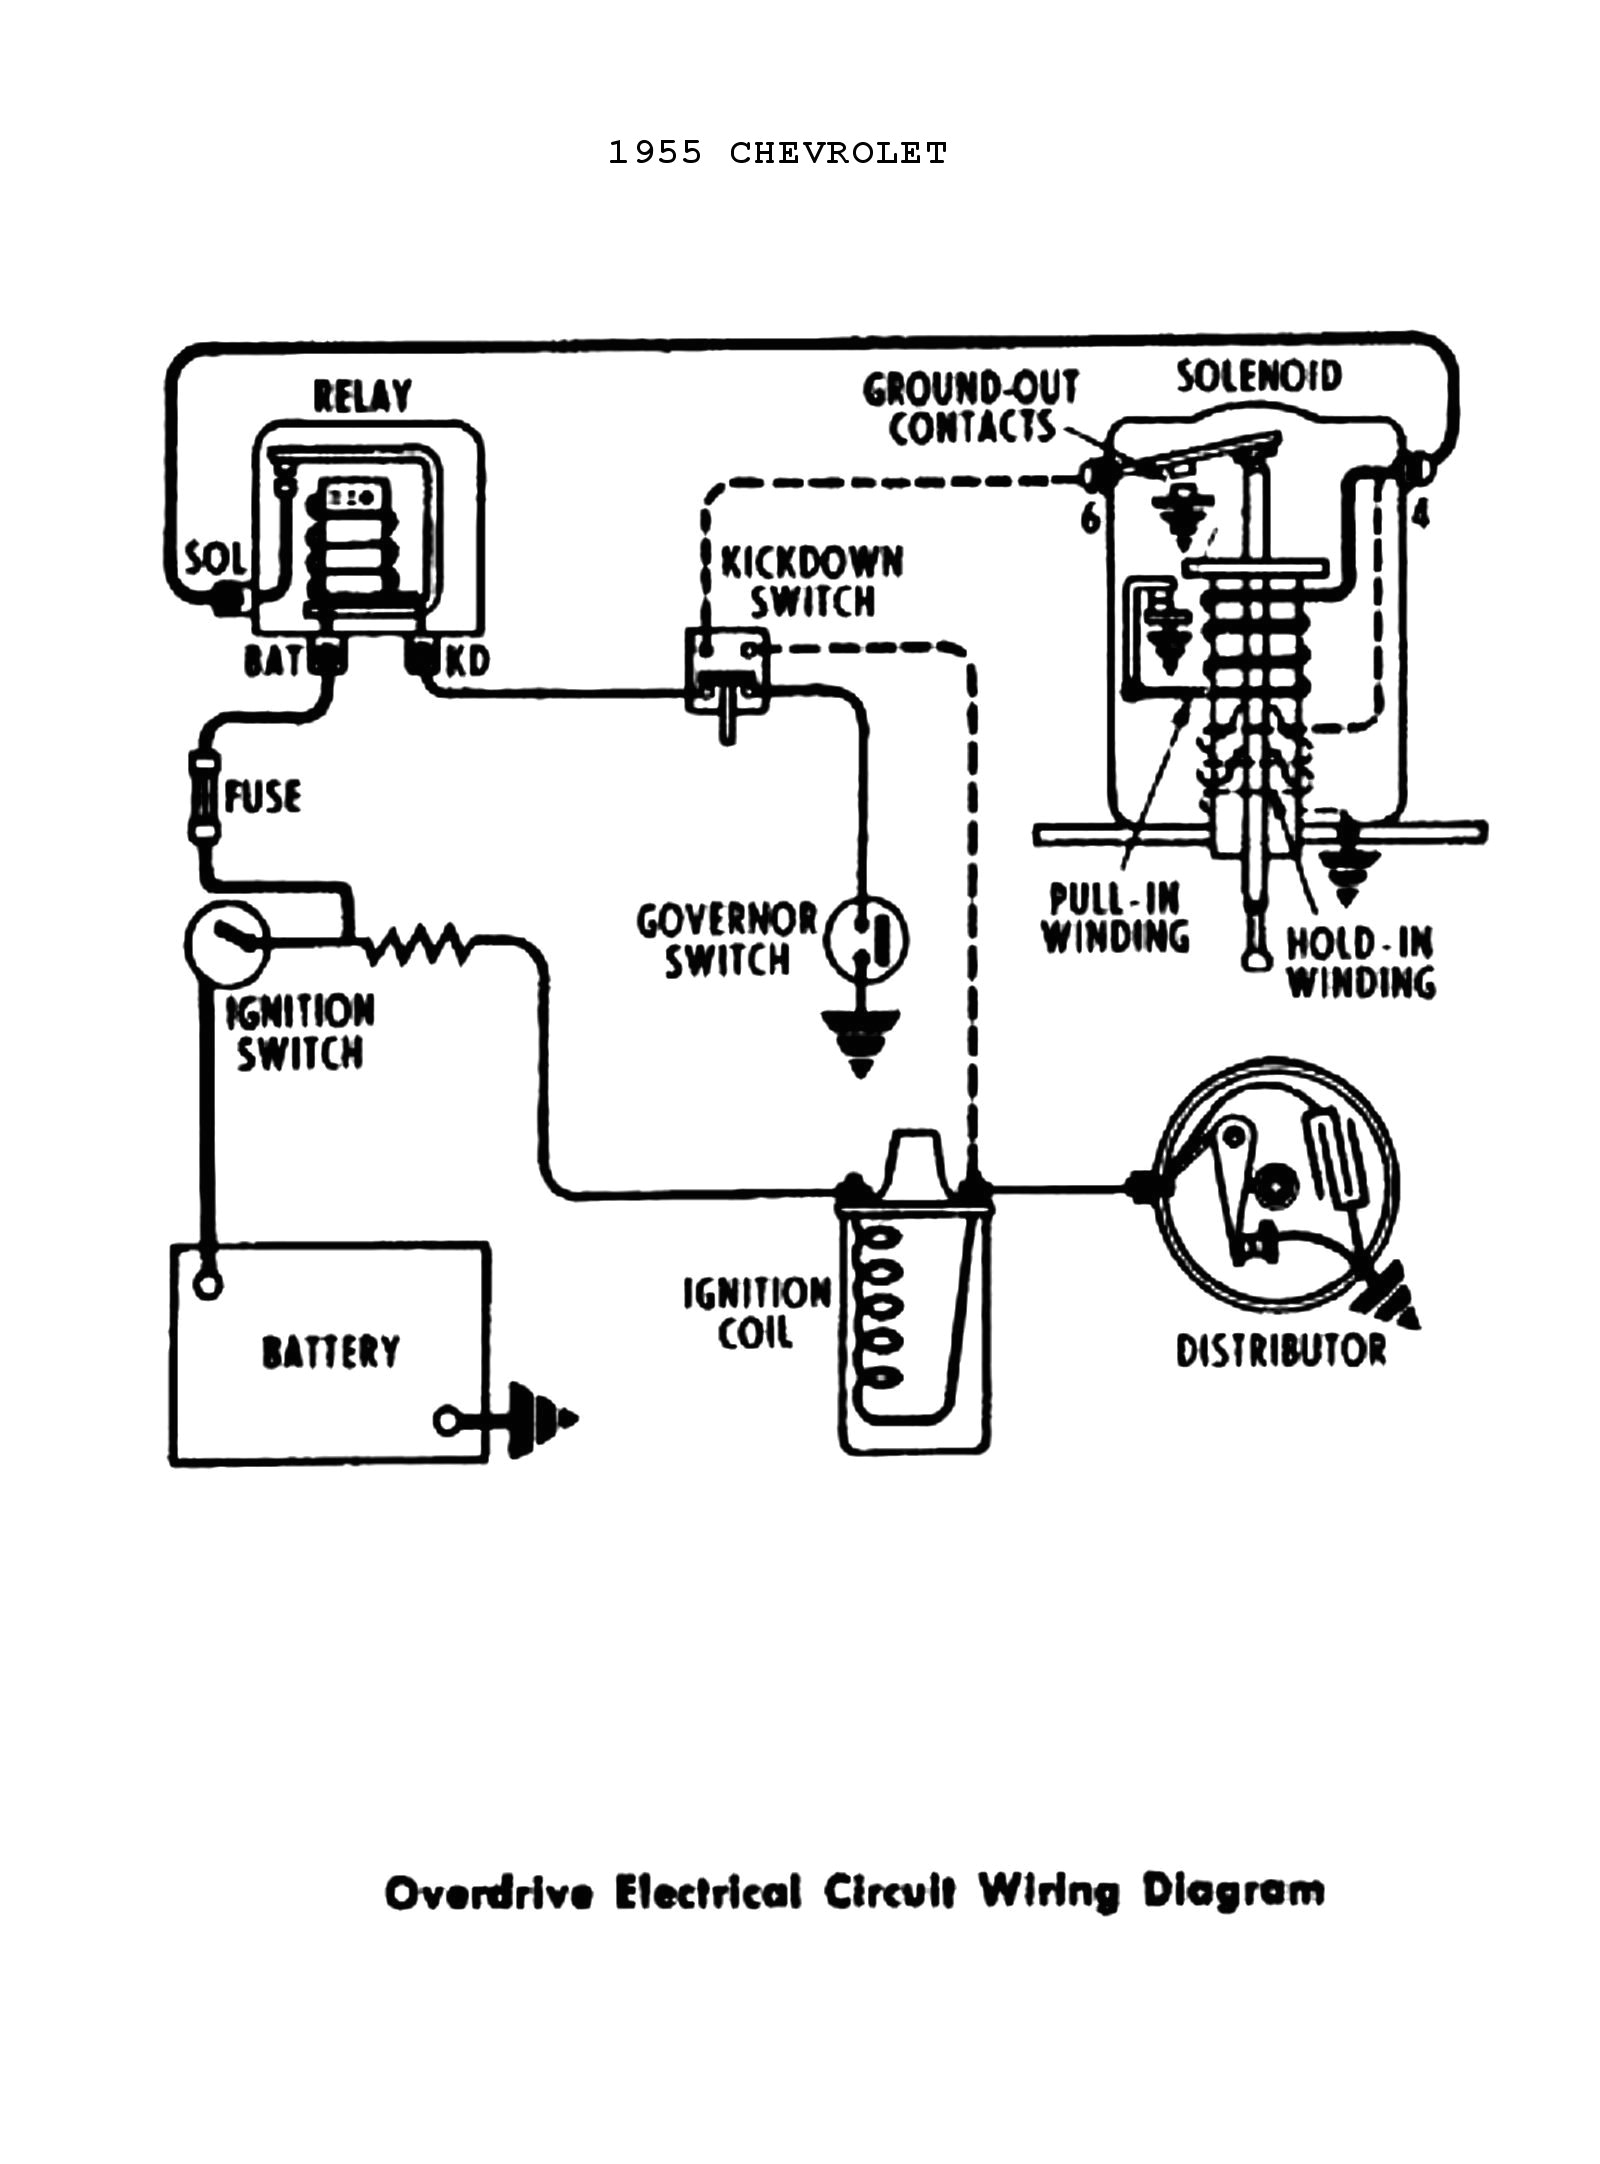 car ignition wire diagram wiring diagram today car ignition wiring chevy truck switch diagram wiring diagram